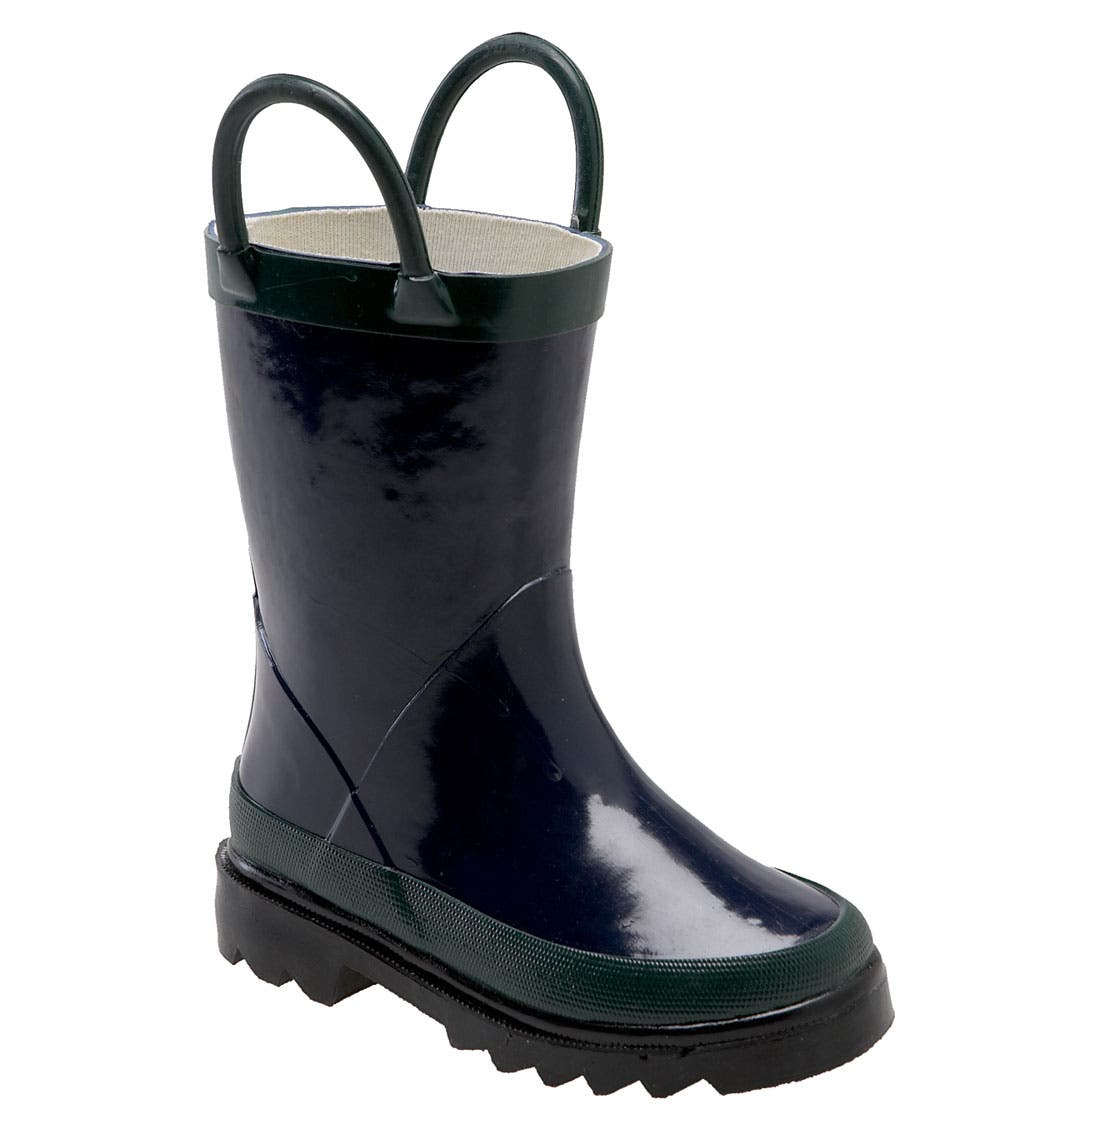 Main Image - Western Chief 'Classic' Rain Boot (Walker, Toddler, Little Kid & Big Kid)